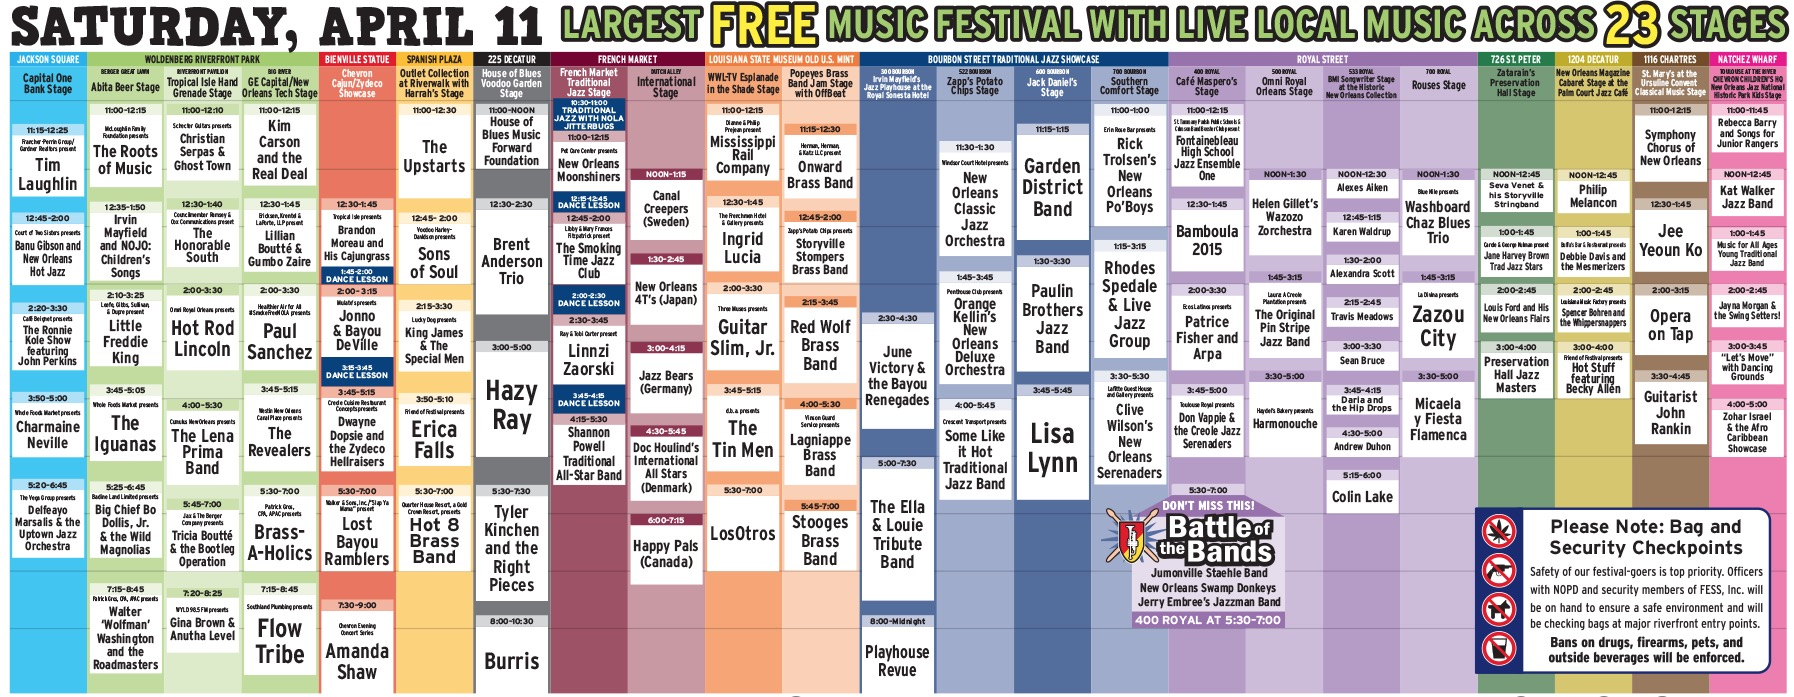 French Quarter Fest 2015 Daily Schedule for Saturday, April 11